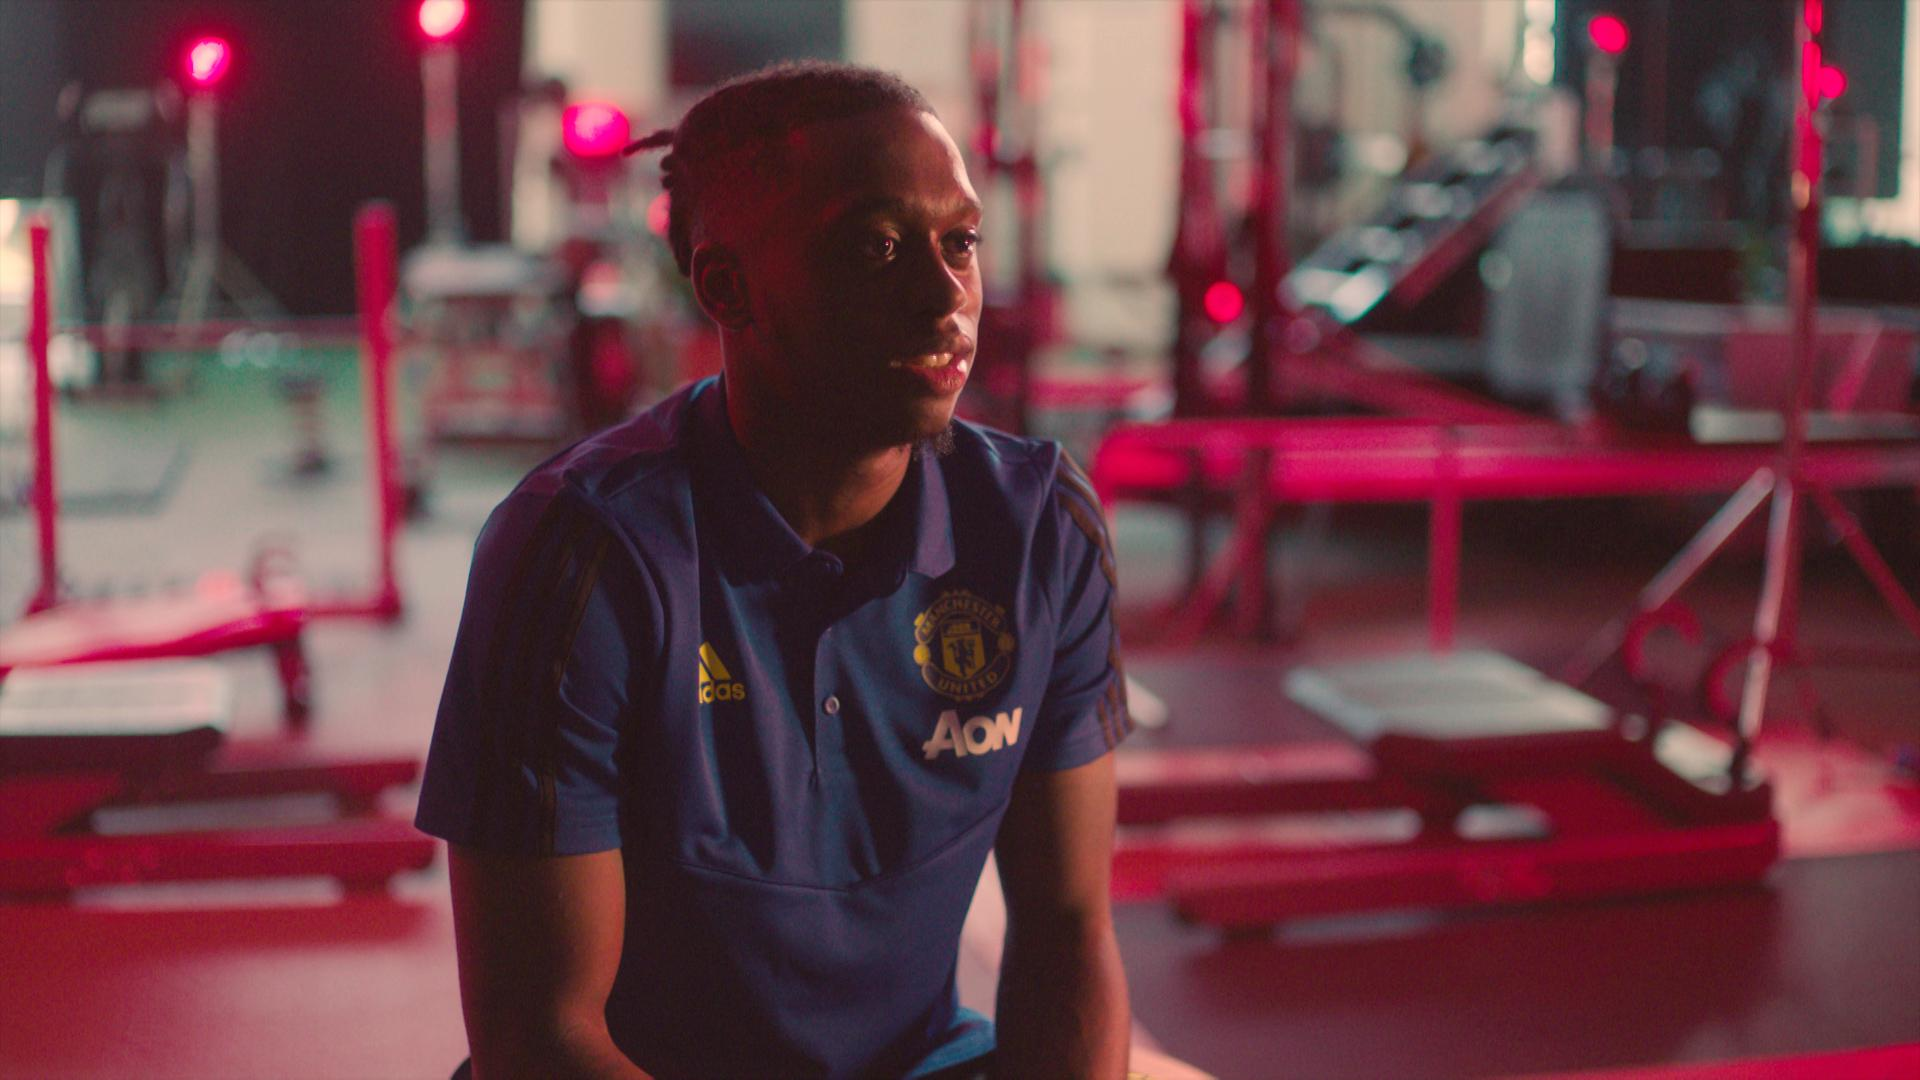 Aaron Wan-Bissaka speaking during his first interview as a Manchester United player.